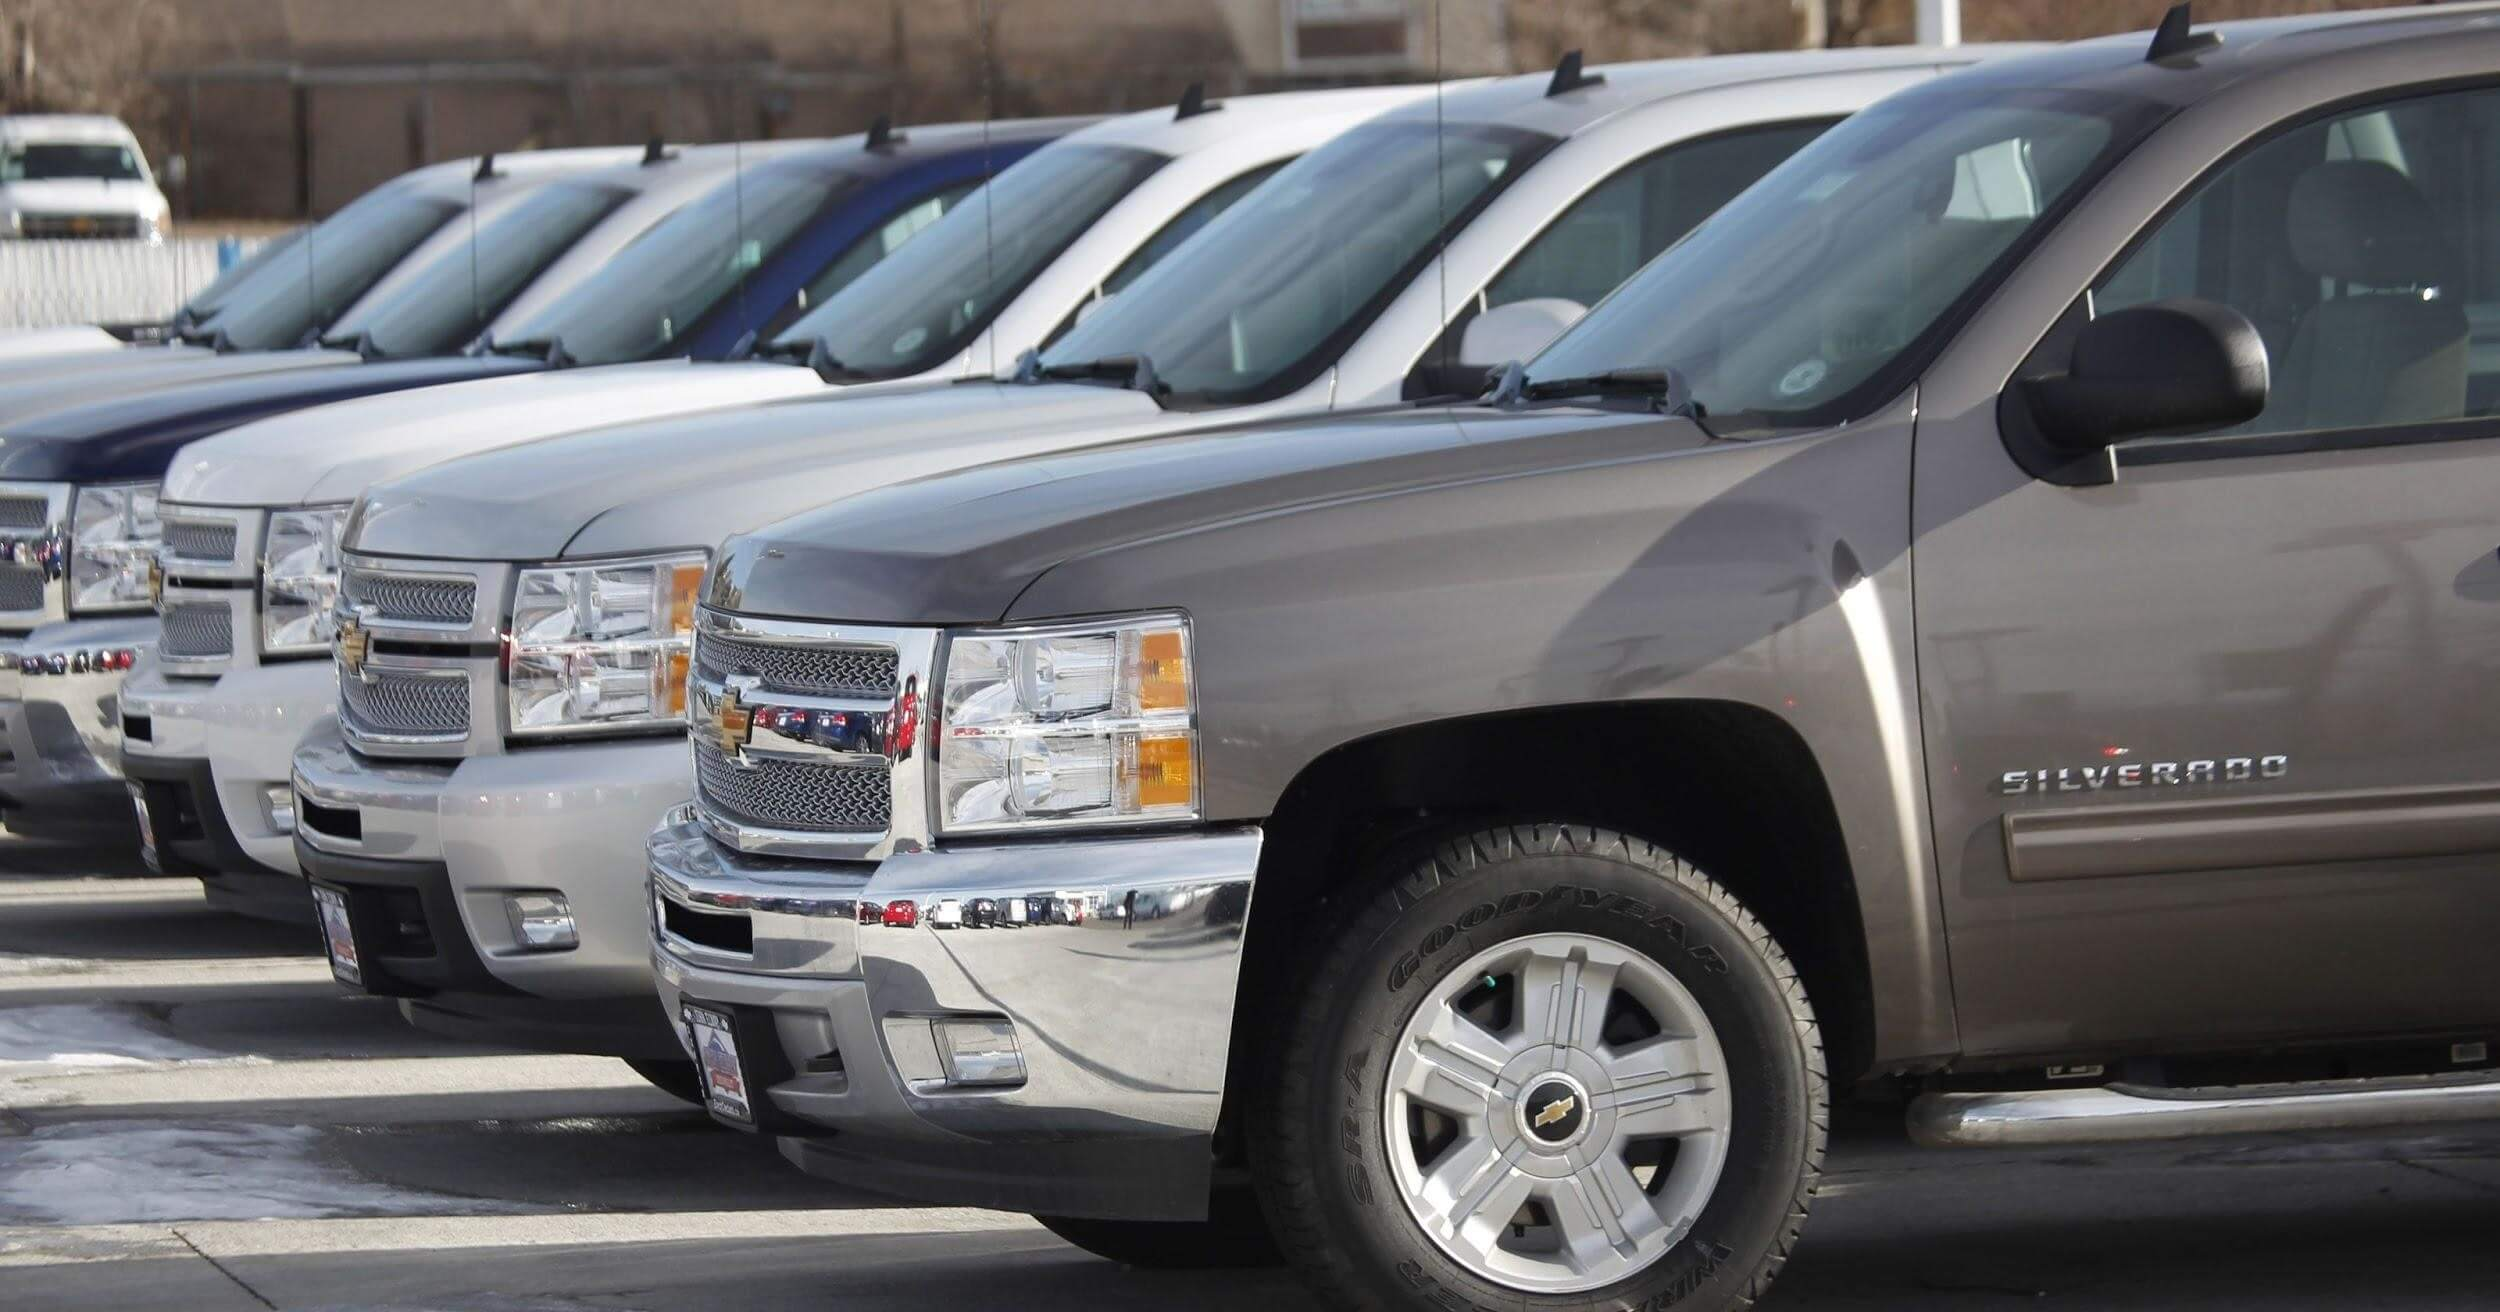 Selling Used Cars Tips You Need To Learn Now